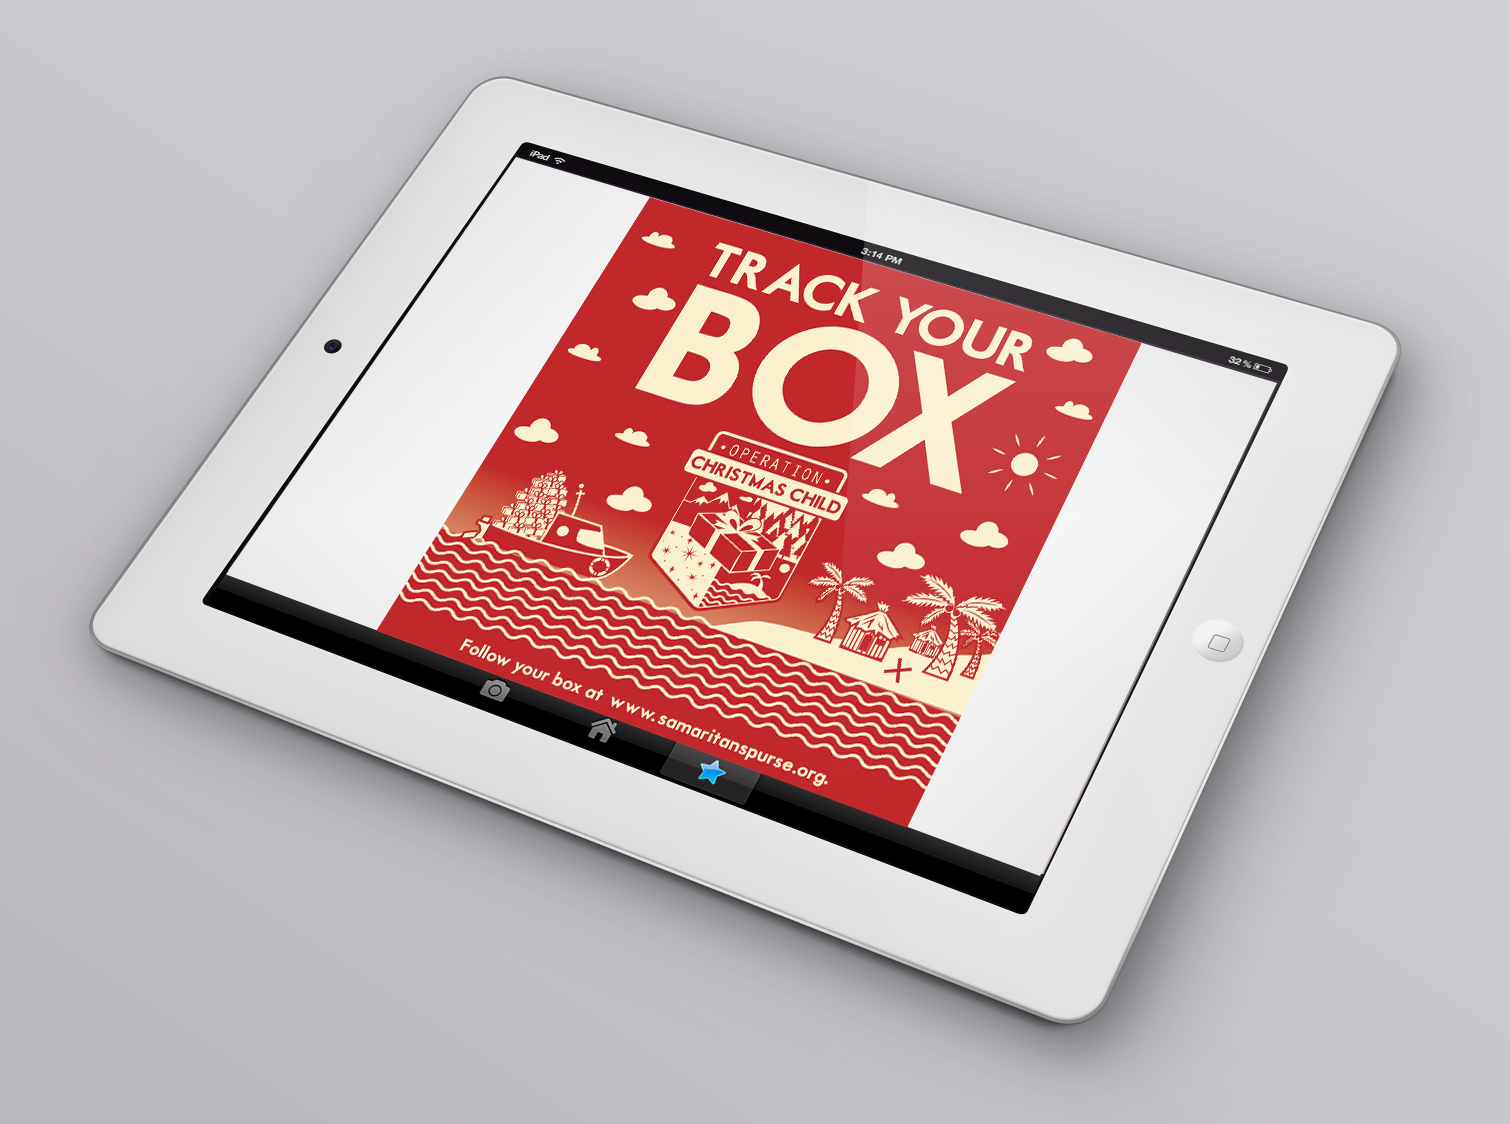 iPad2-White-Perspective-View-Landscape-Mockup_occ3.jpg